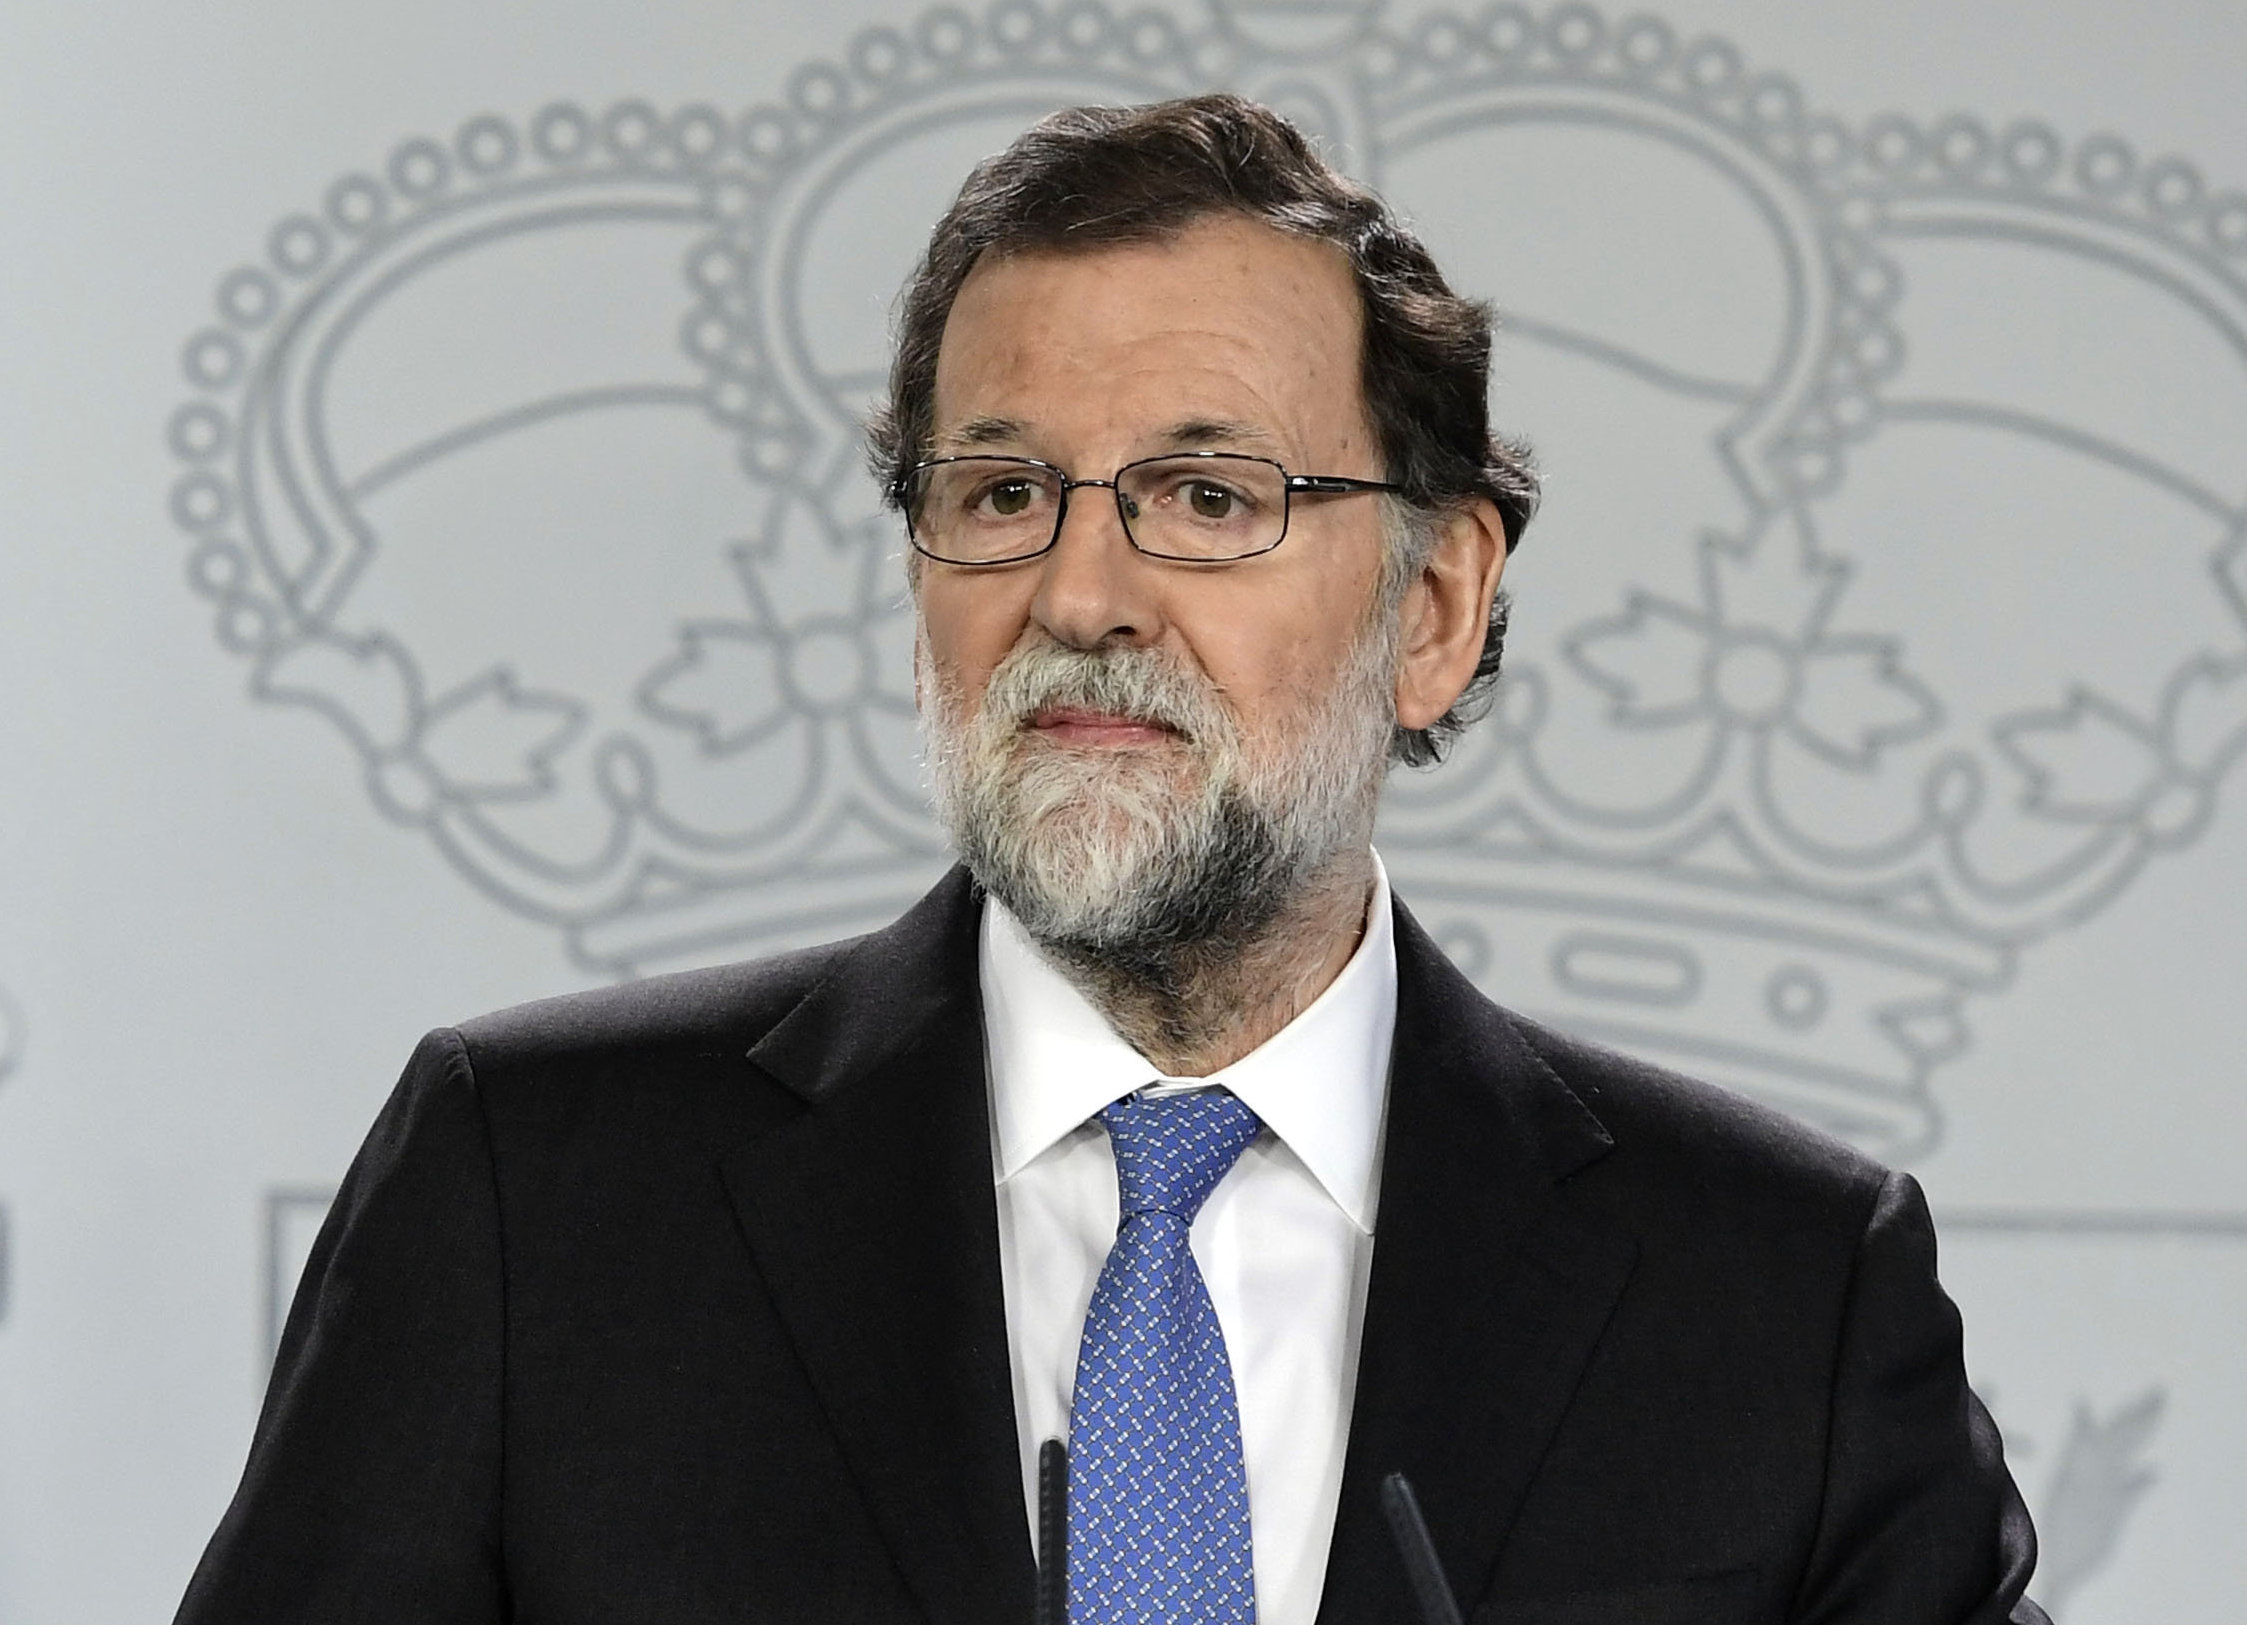 Spanish Prime Minister Mariano Rajoy has backtracked on withdrawing direct rule from Madrid